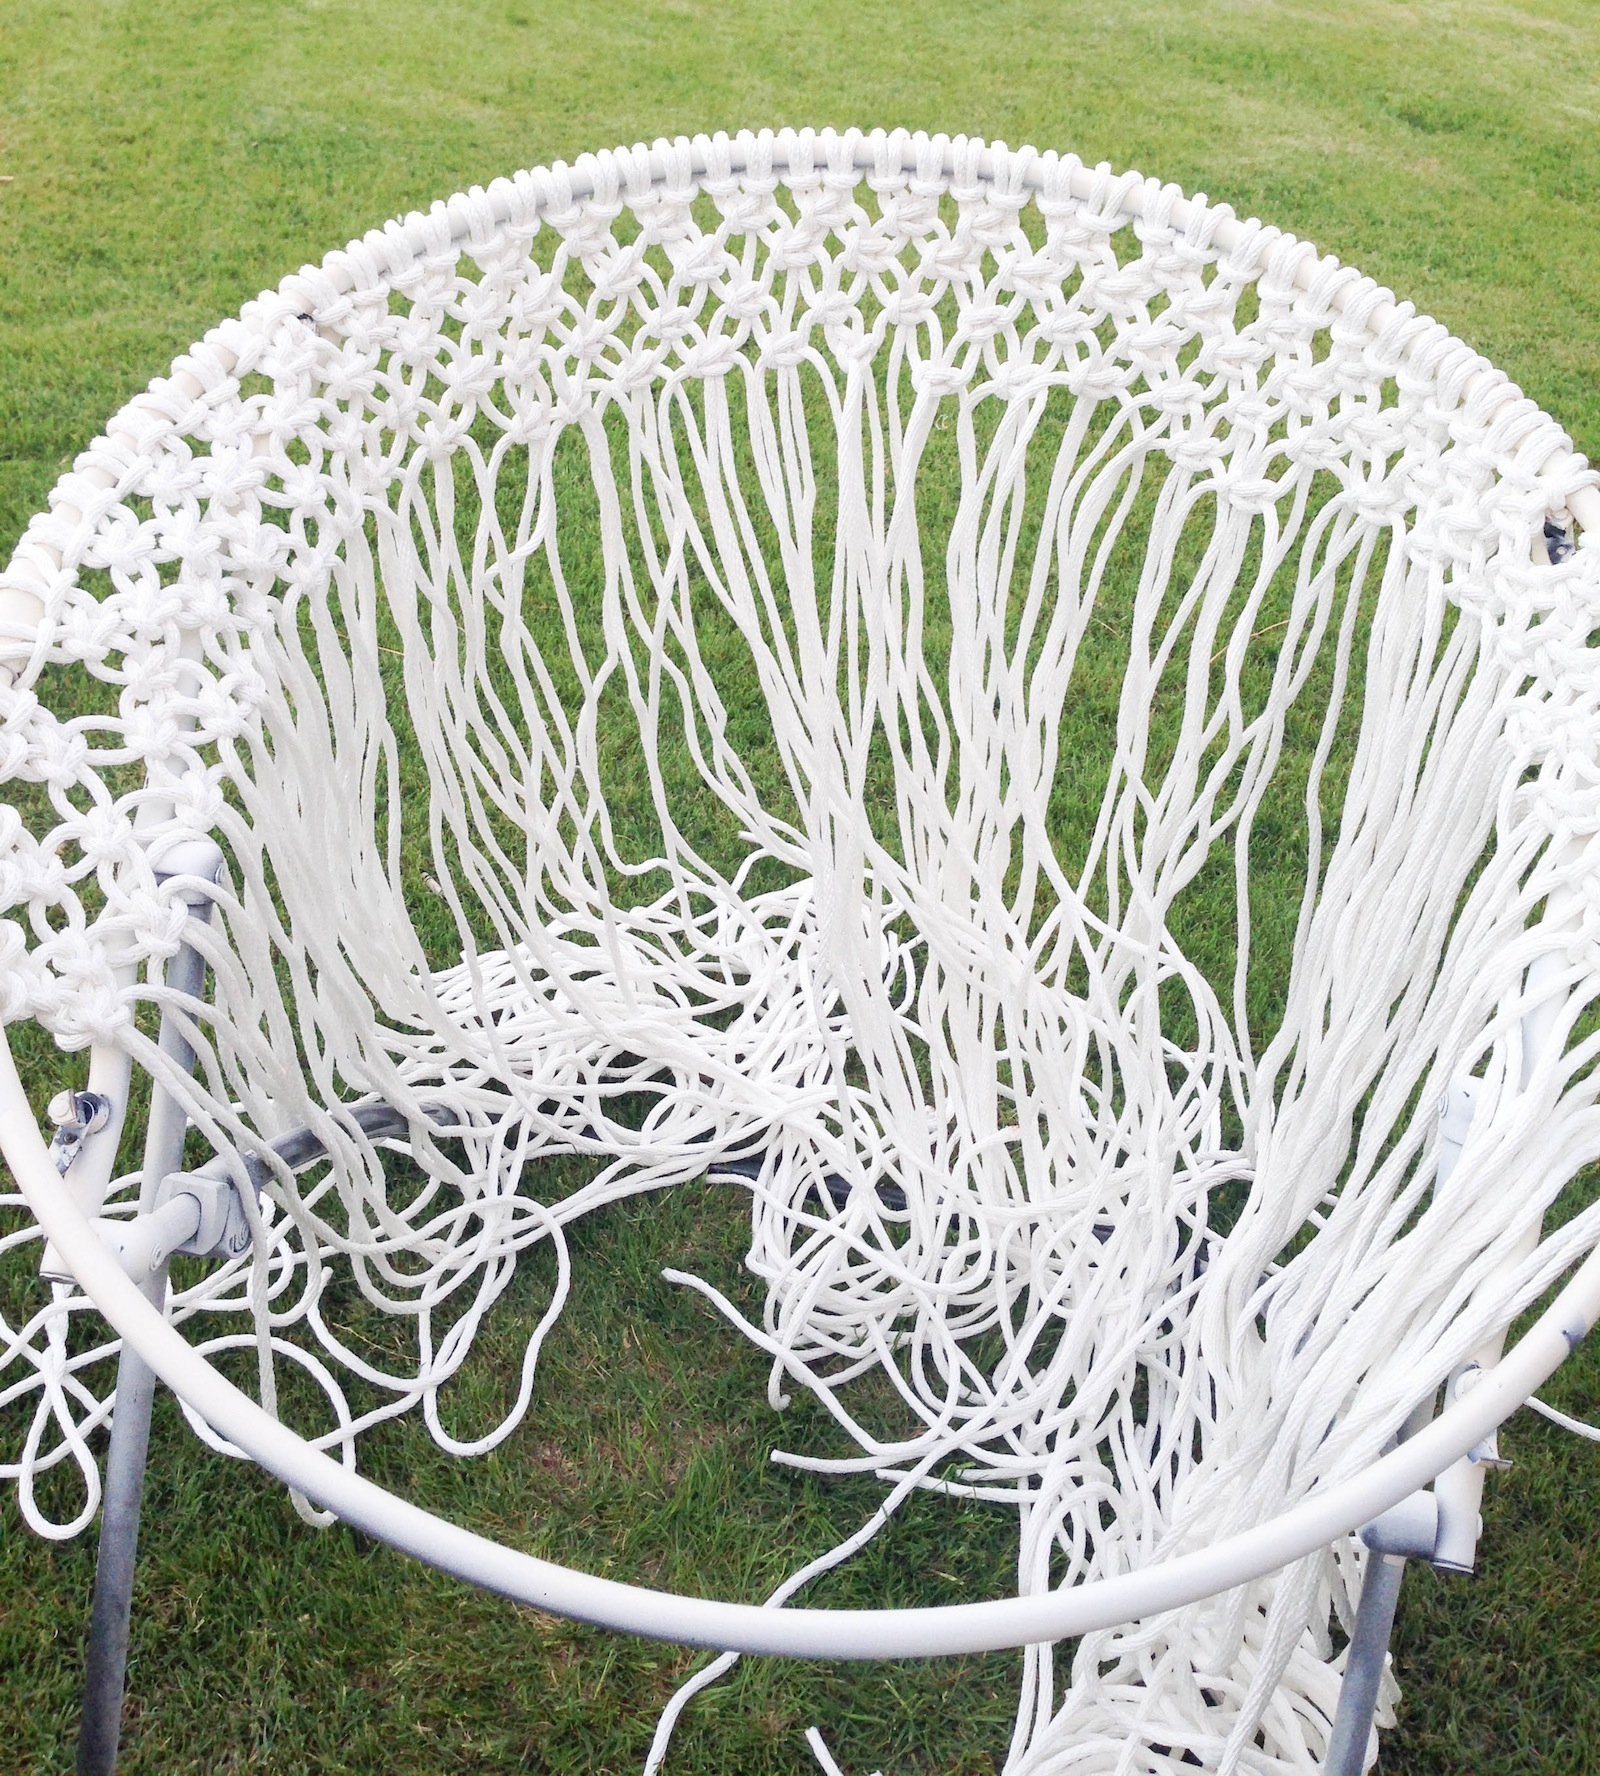 Diy hanging macram chair for Macrame hammock chair pattern